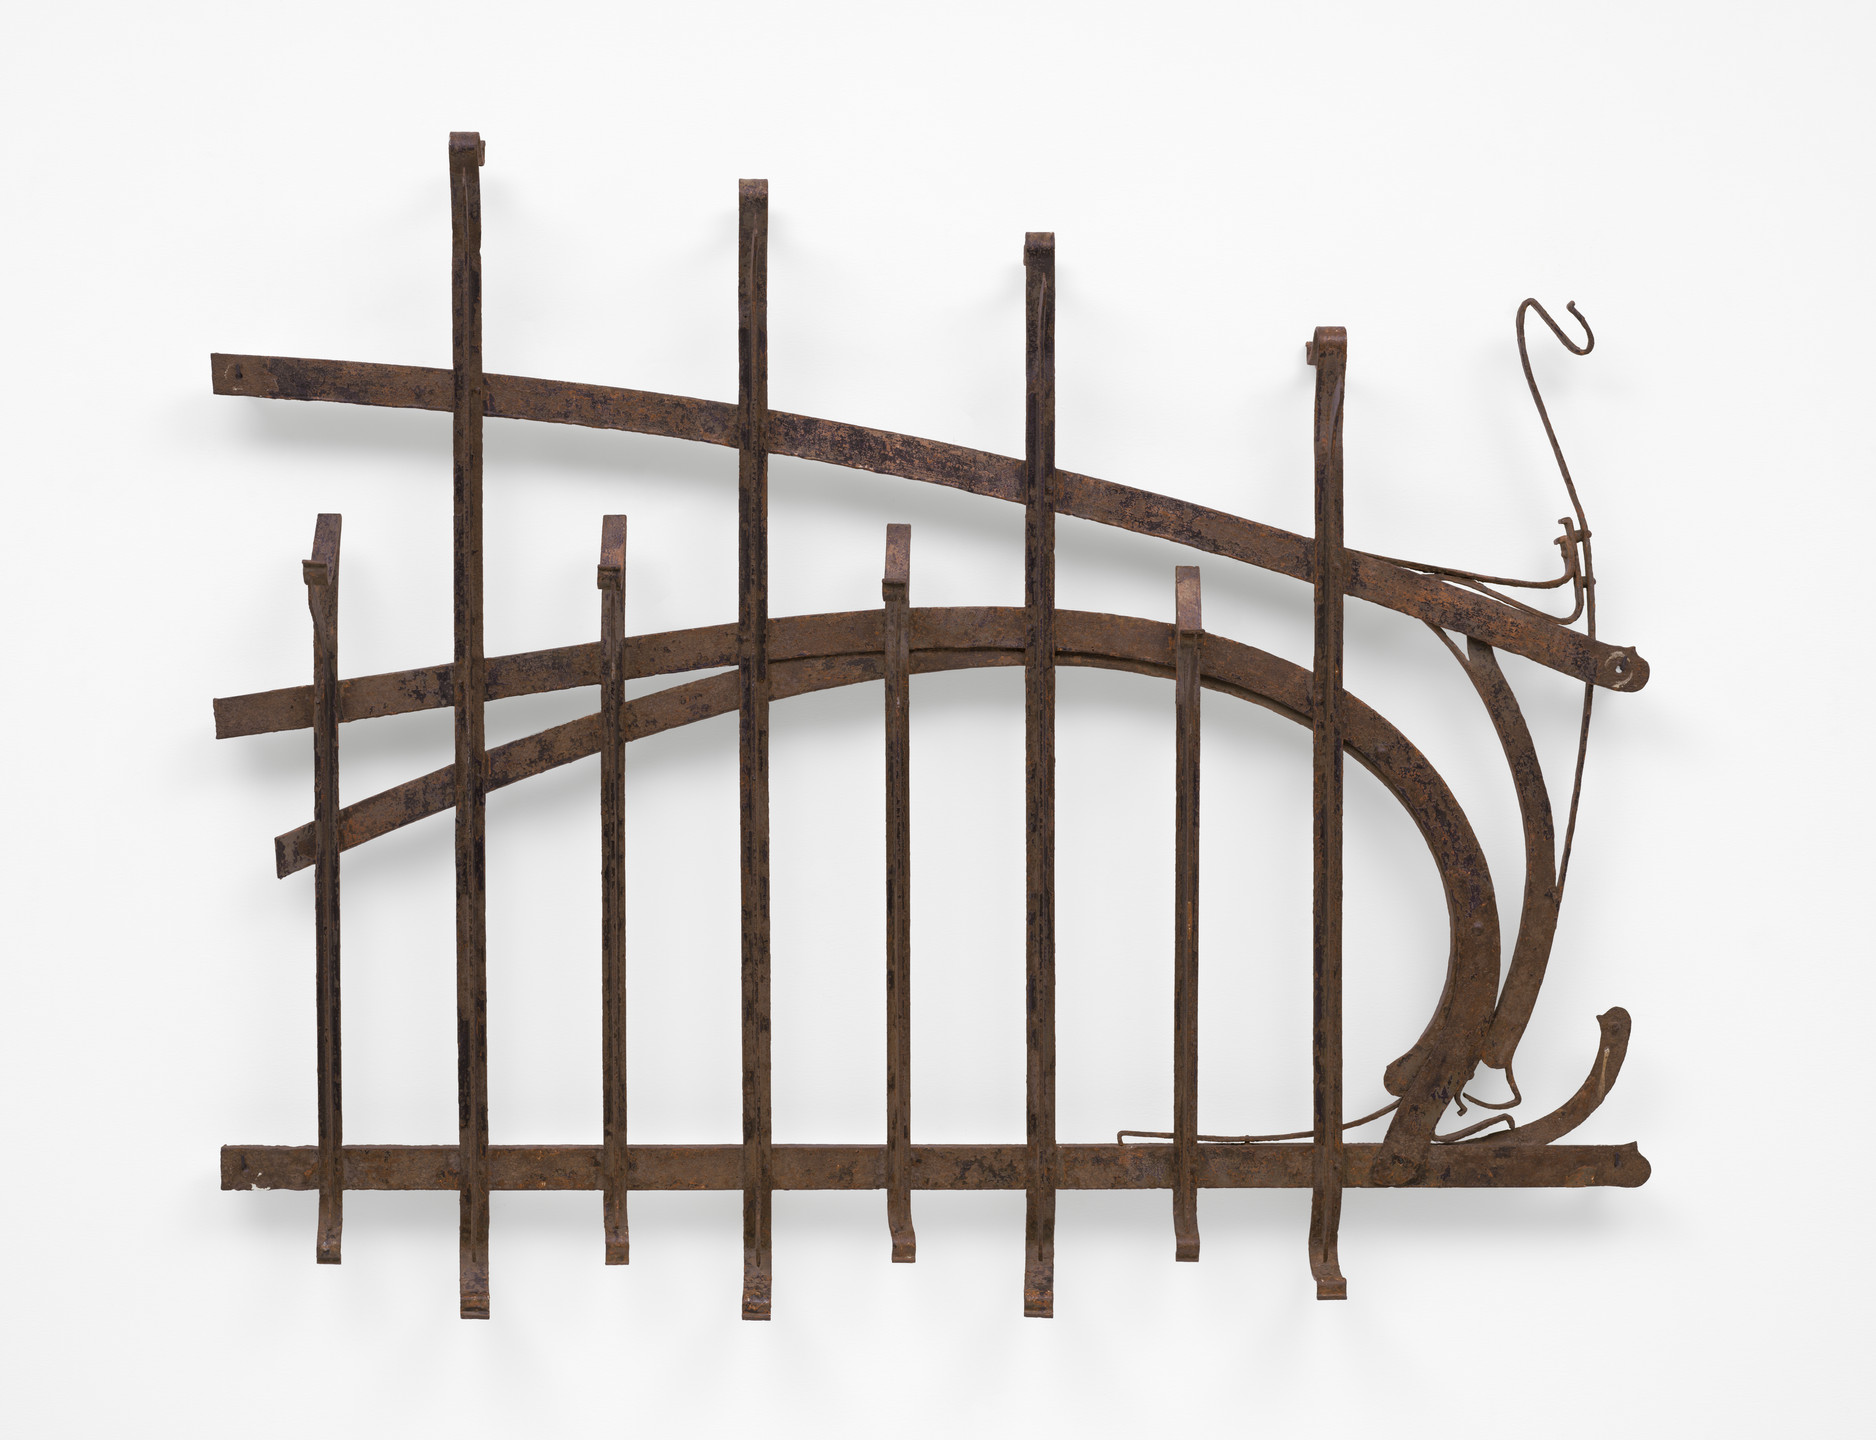 Hector Guimard. Fence from the Castel Henriette, Sèvres, France. 1899–1903